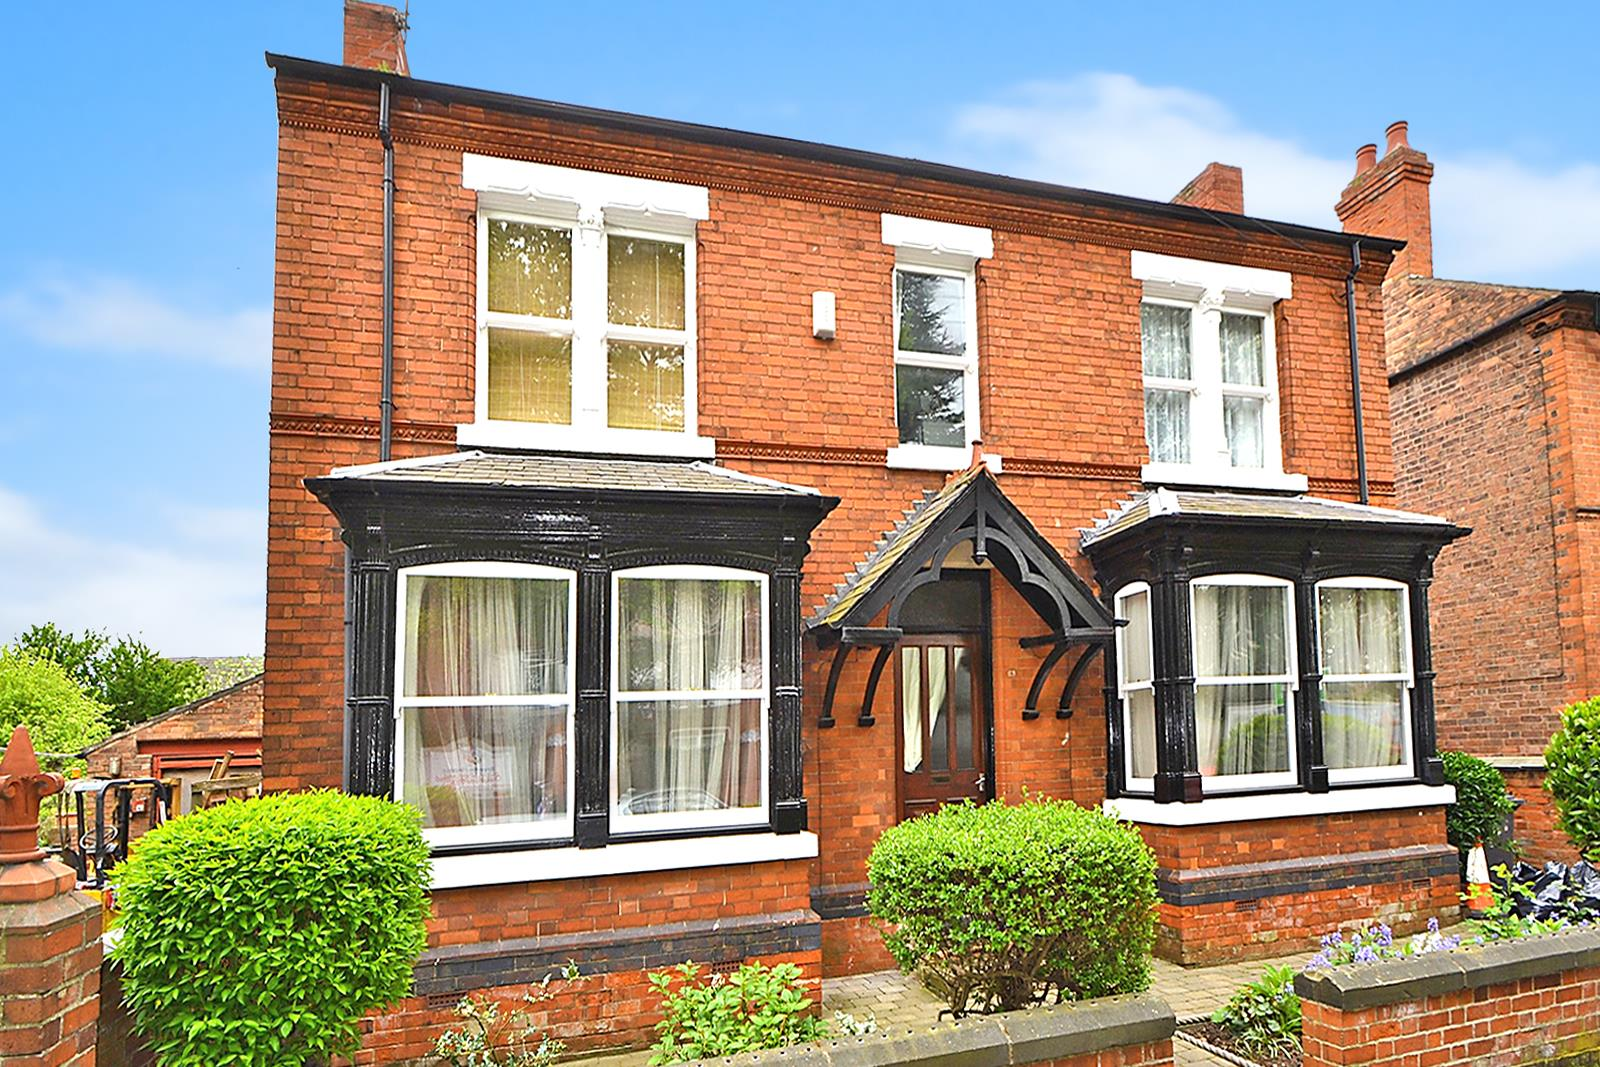 4 Bedrooms Detached House for sale in Acton Road, Long Eaton